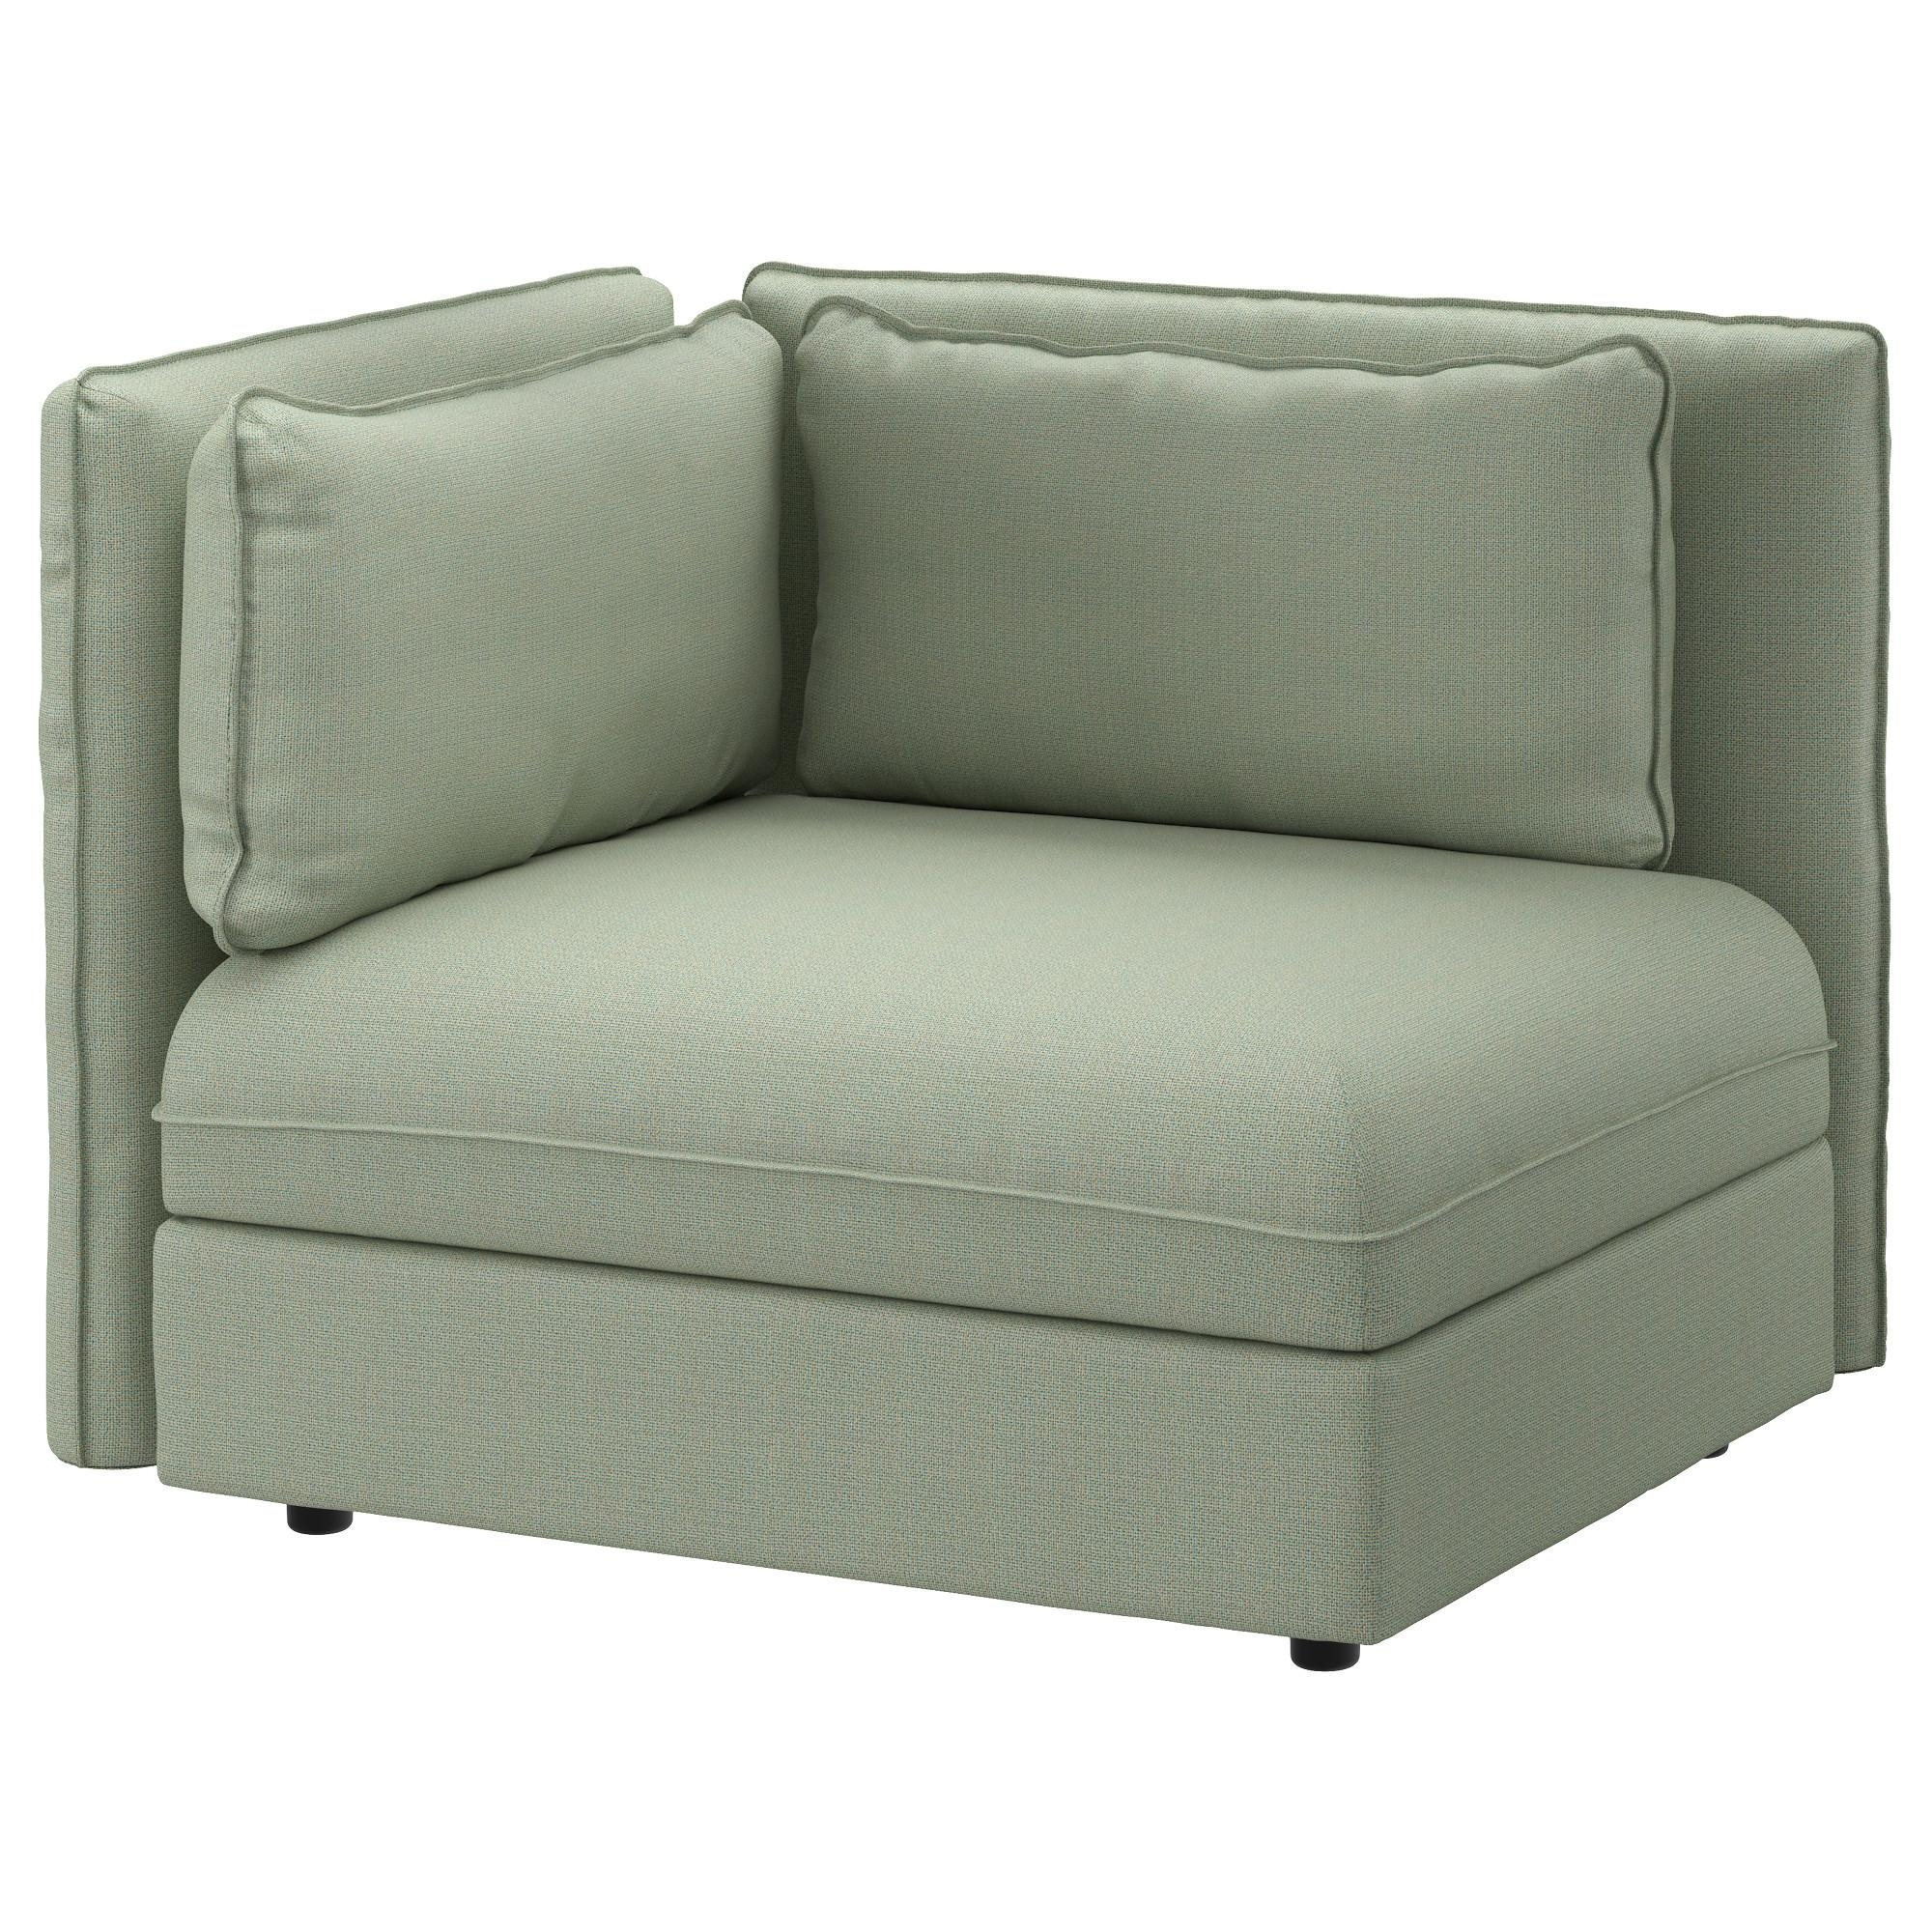 Sectional Sofas & Couches – Ikea With Regard To Ikea Sleeper Sofa Sectional (View 18 of 20)